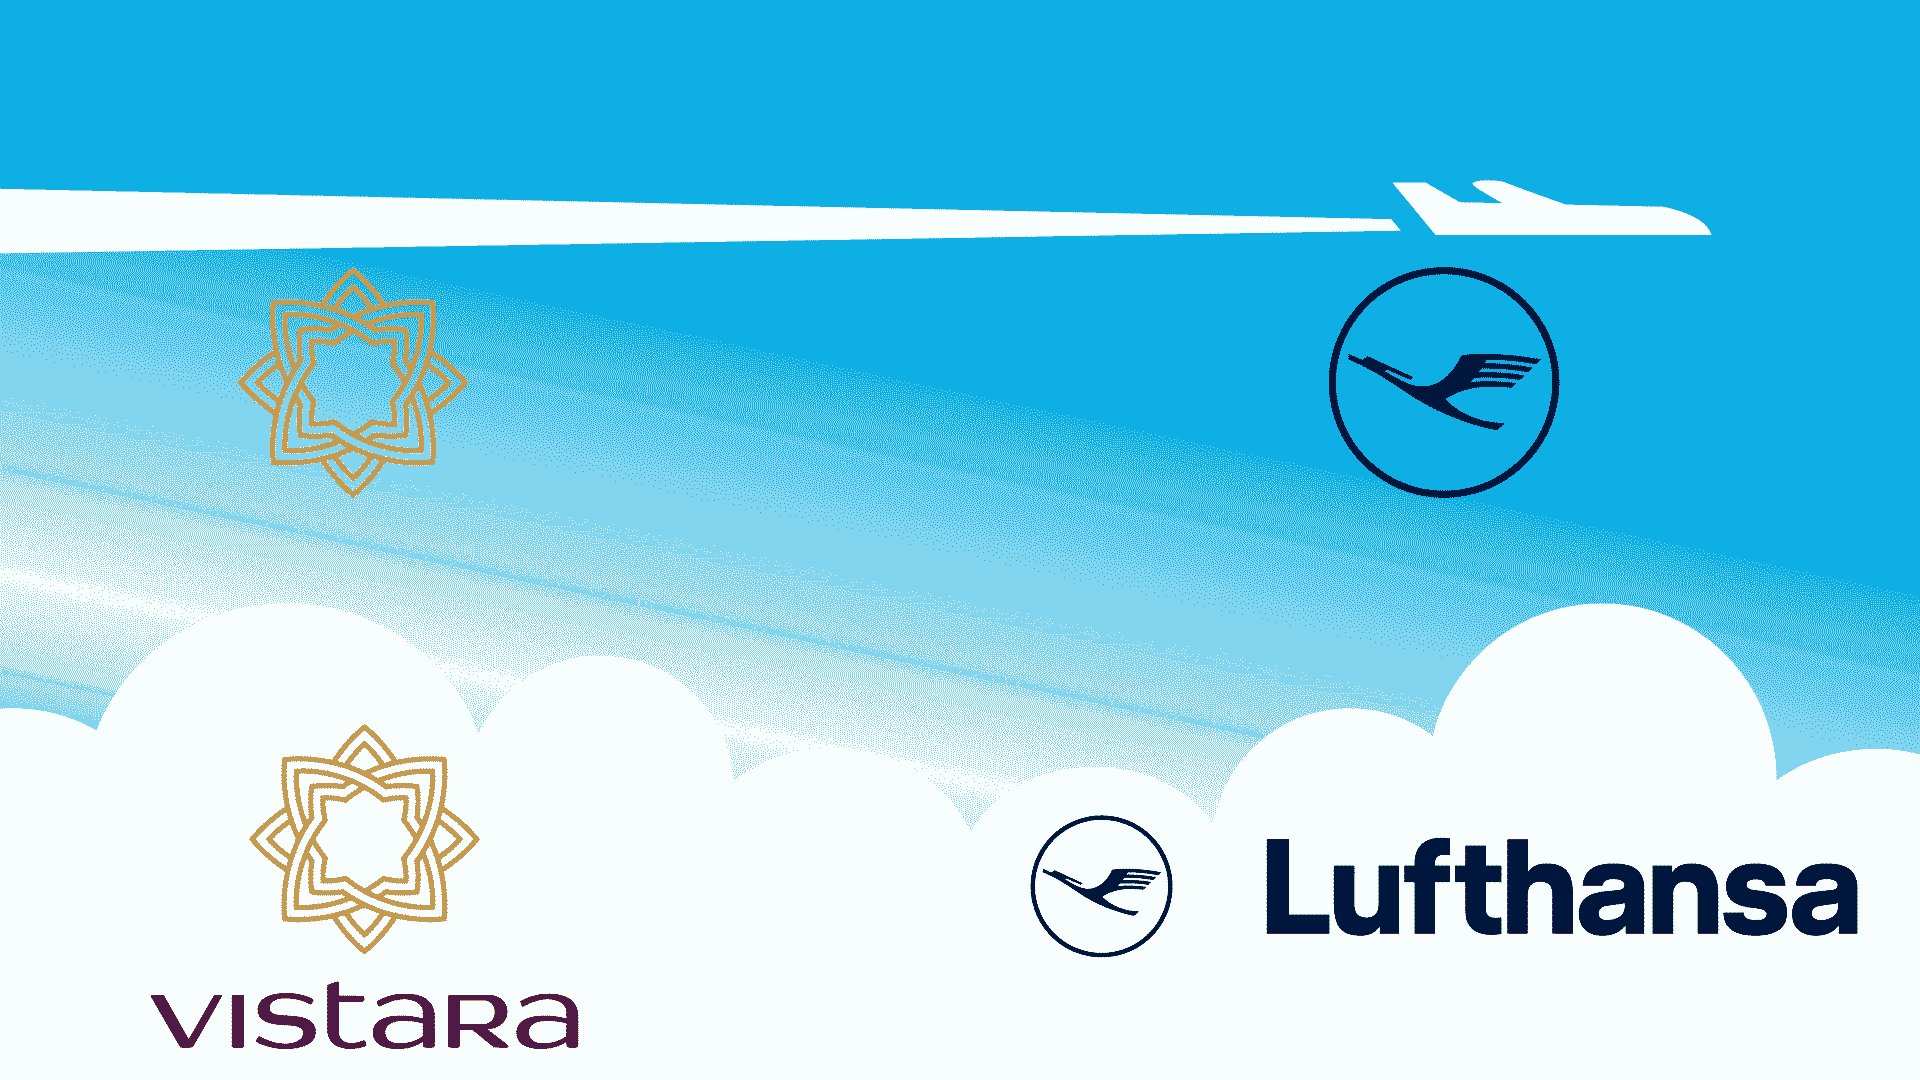 Vistara inks codeshare agreement with Lufthansa